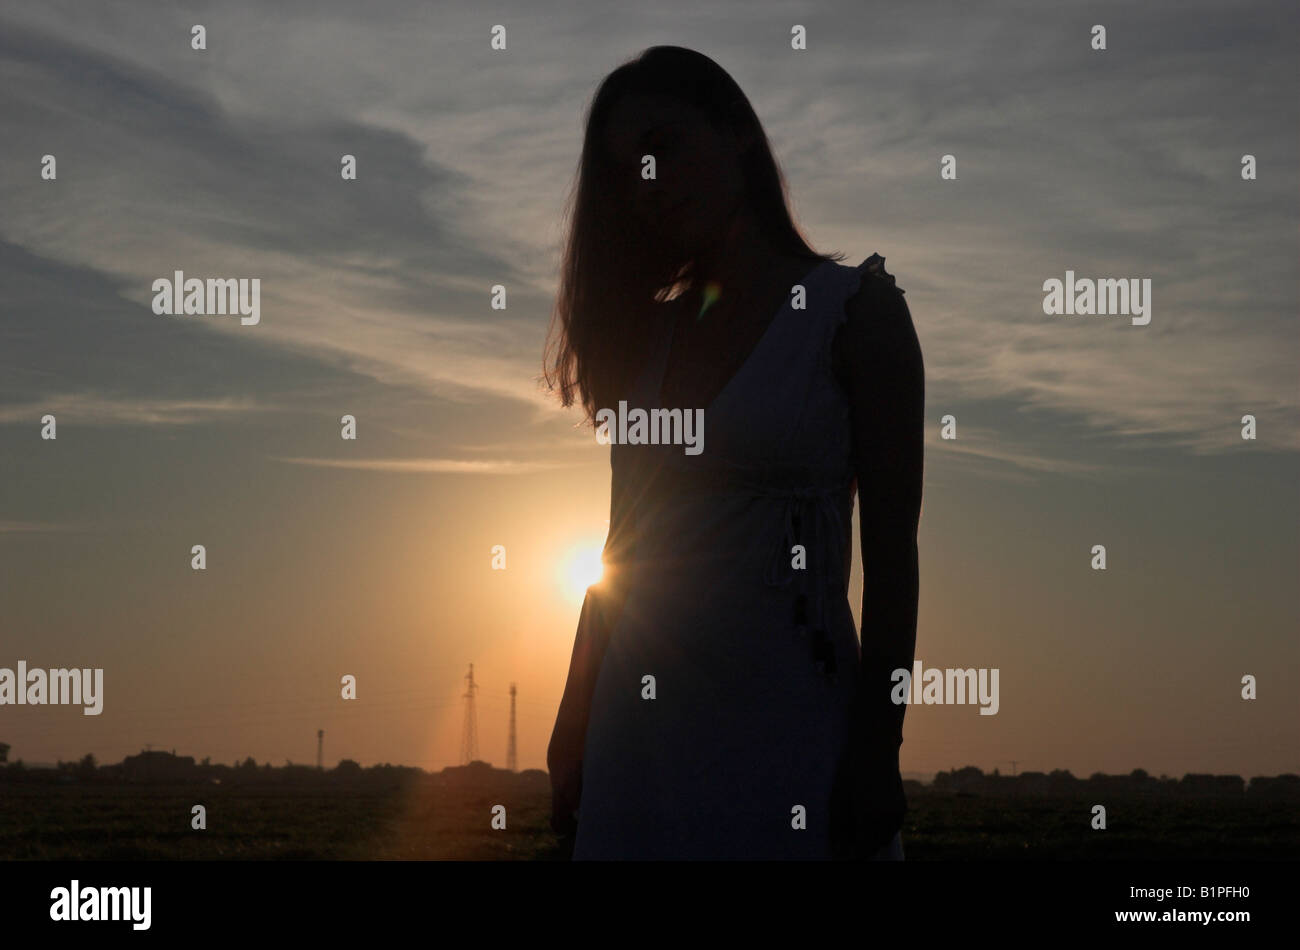 Silhouette of a young woman wearing summer dress standing outdoors at dusk sun shining behind head bowed - Stock Image